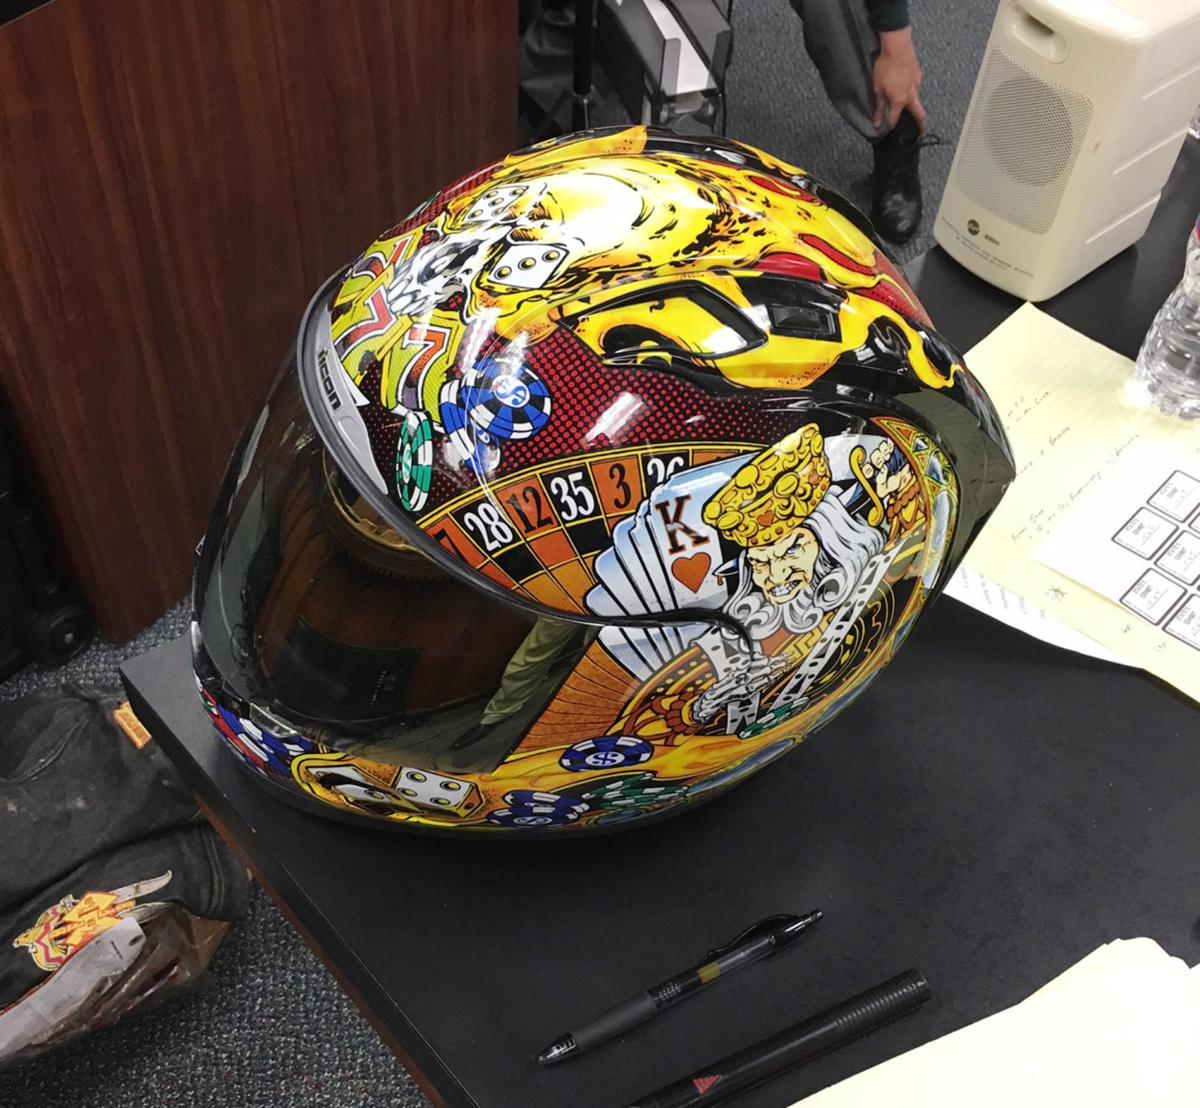 Jacob Carrizal helmet